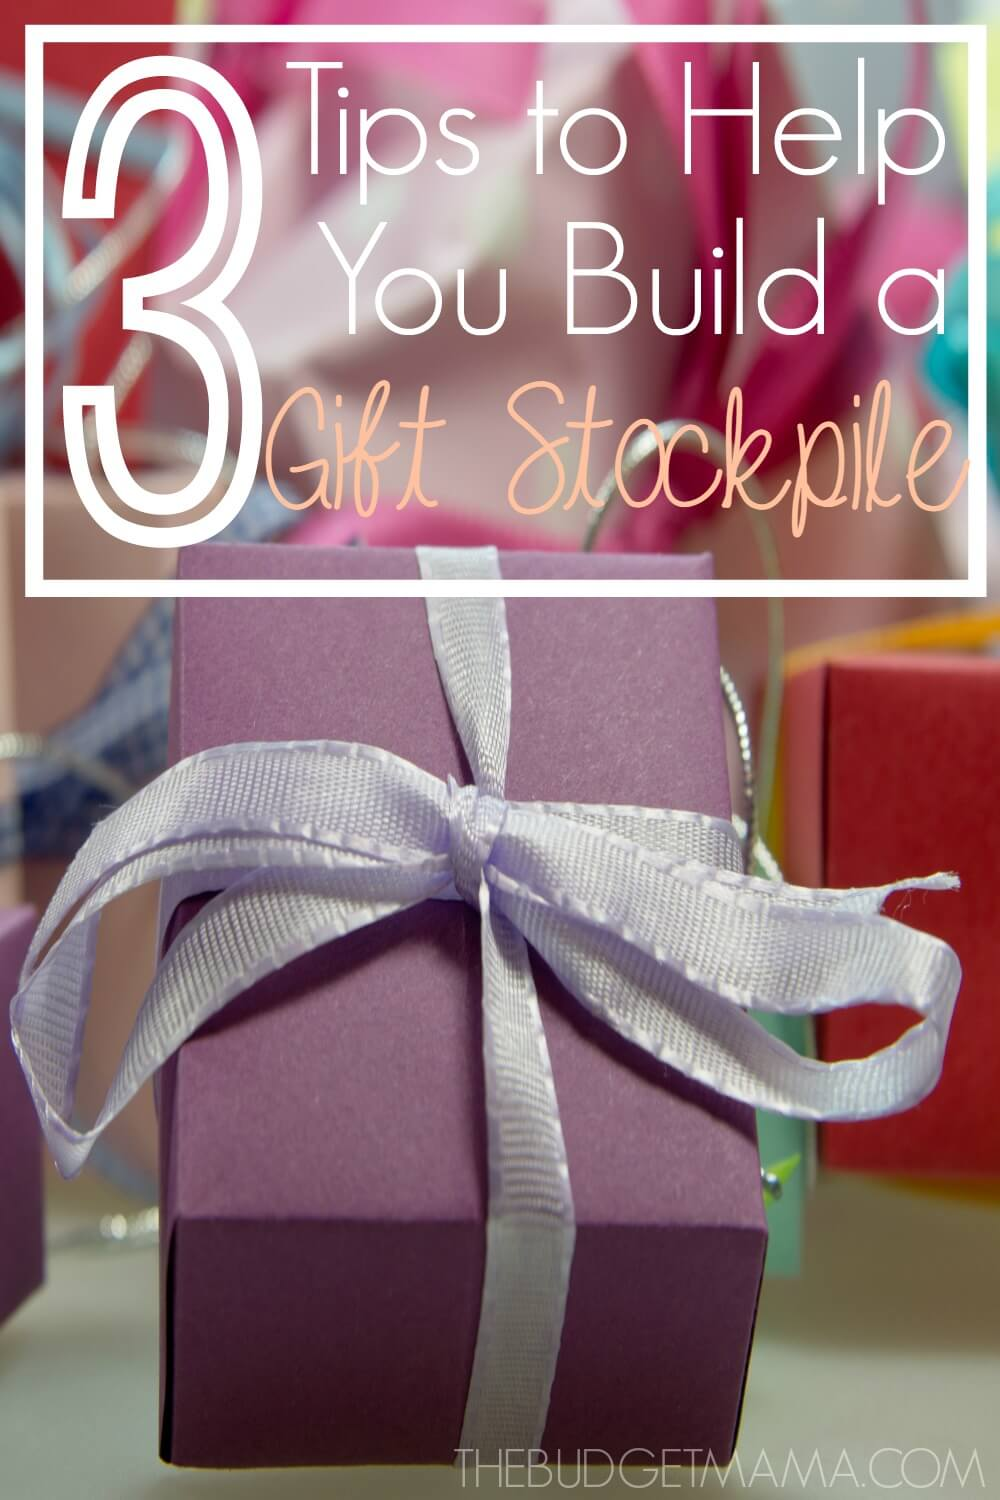 3 Tips to Help You Build a Gift Stockpile